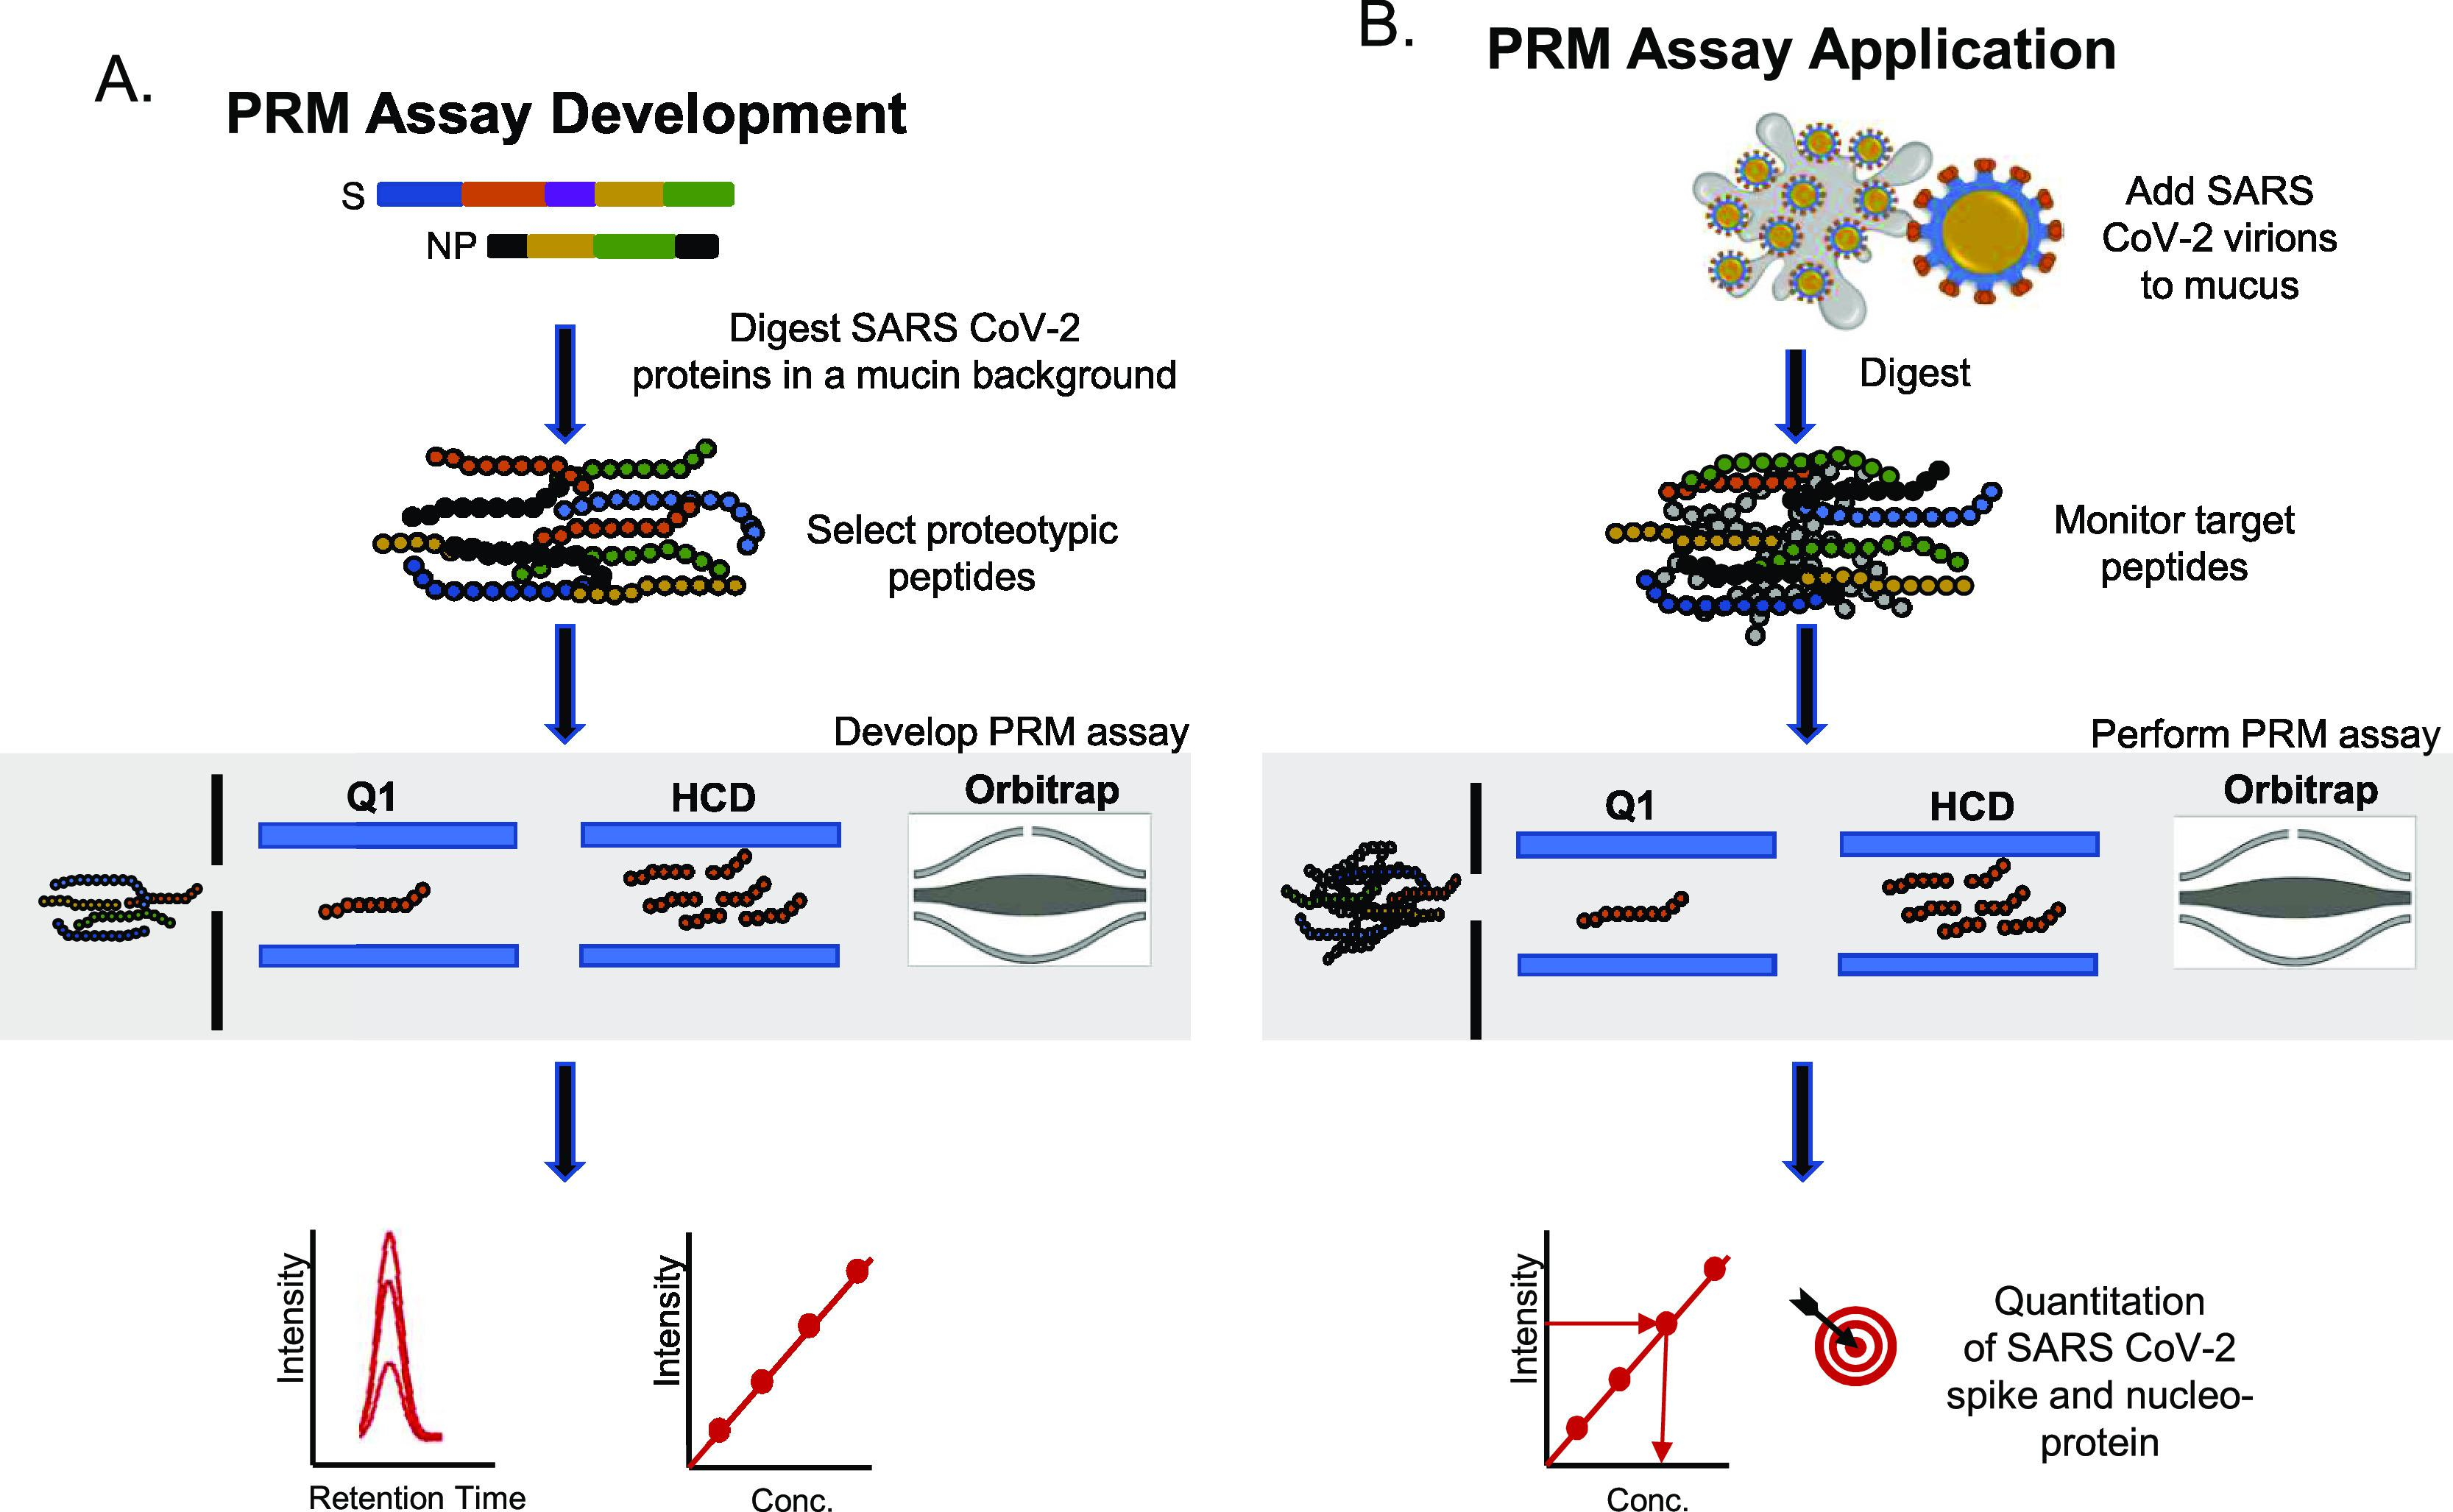 Schematic of the workflow used to develop a PRM assay for the detection and quantitation of SARS-CoV-2 spike and NP (A) PRM assay development was performed using recombinant SARS CoV-2 spike protein and NP. Proteotypic target peptides/transitions were selected to generate a spectral library in Skyline. (B) PRM assay was then used to quantitate the SARS-CoV-2 protein levels in a mock sample that was created by adding an inactivated virus sample to in vitro derived mucus.